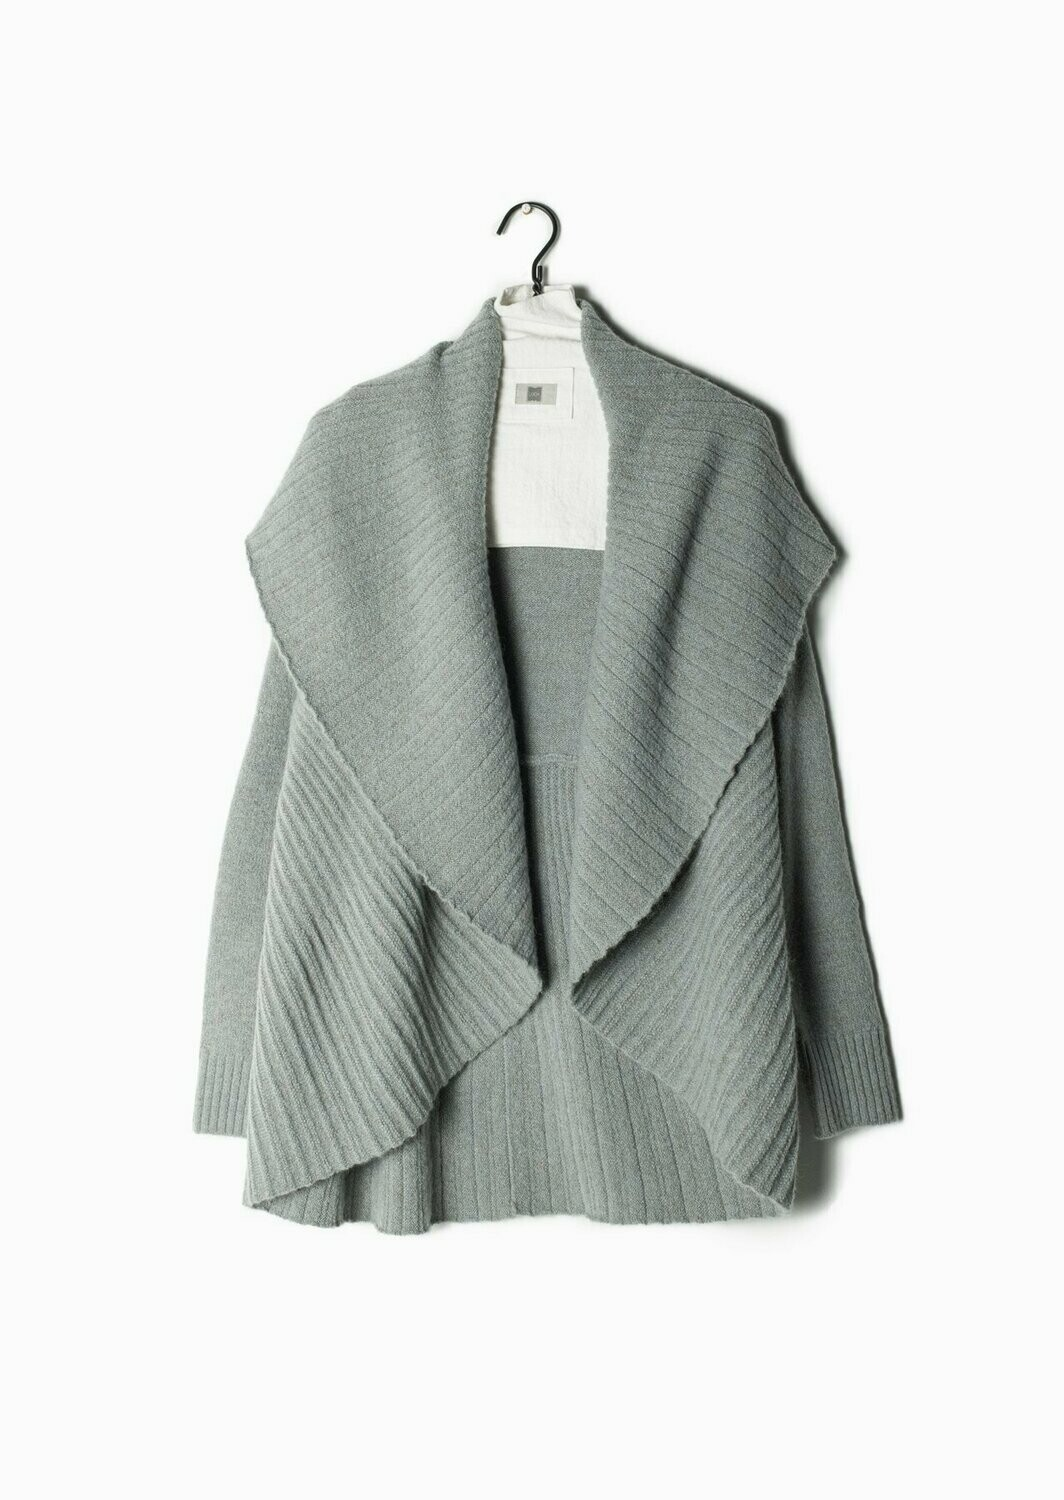 Heather Pleats Cardigan Shawl